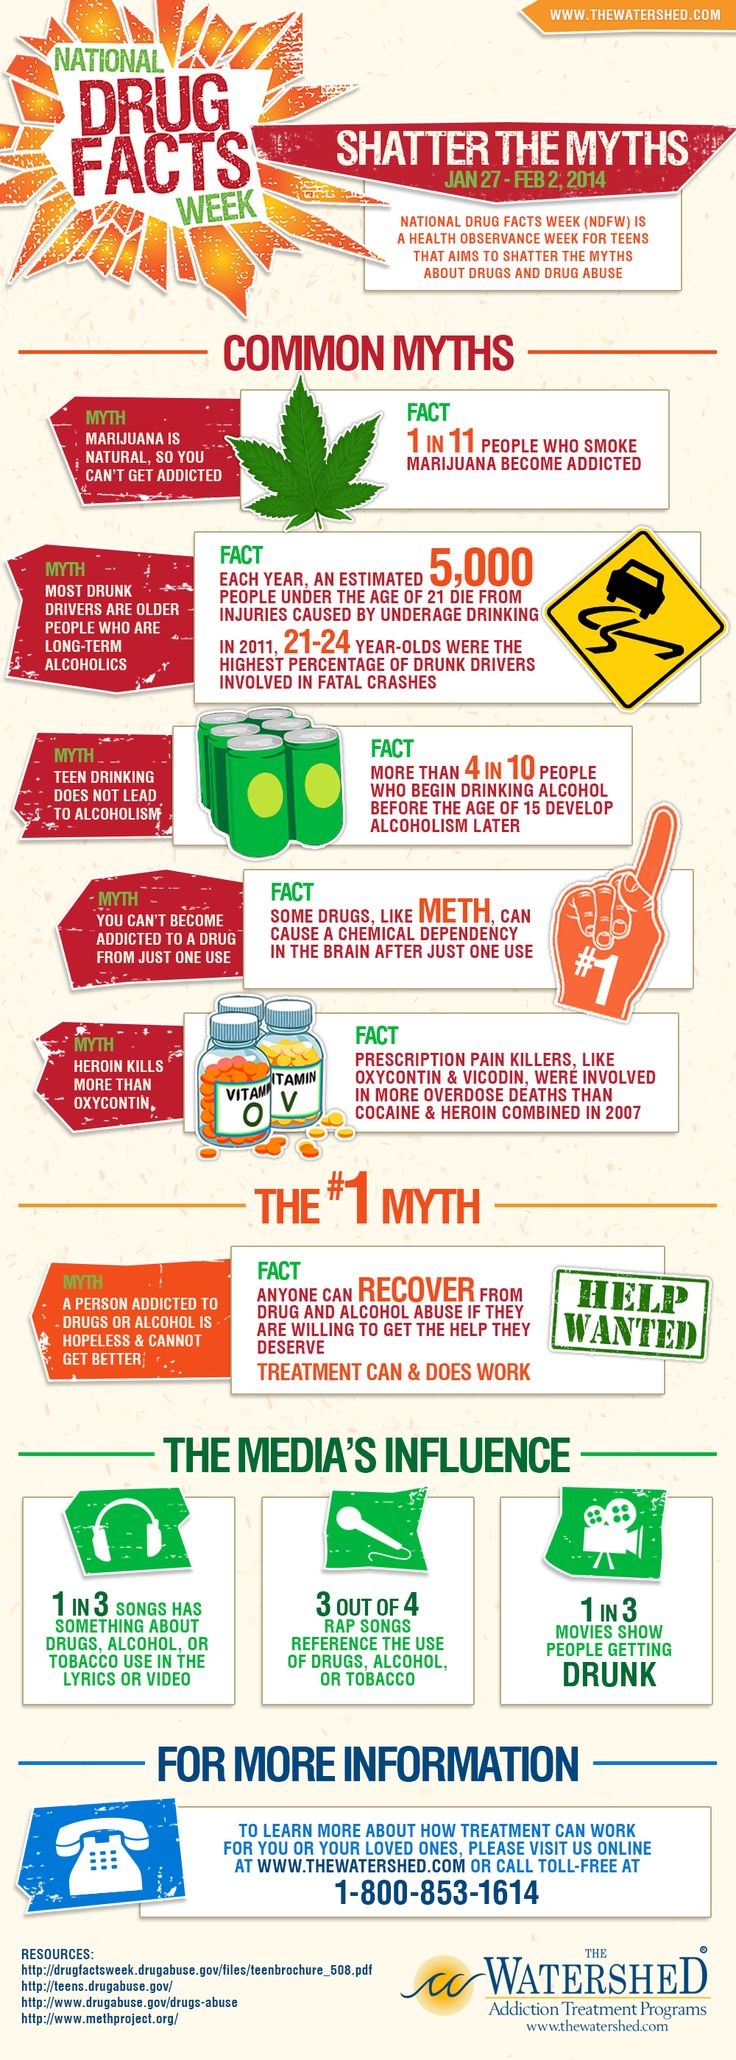 National Drug Facts Week Infographic  https://www.thewatershed.com/blog/national-drug-facts-week-infographic/